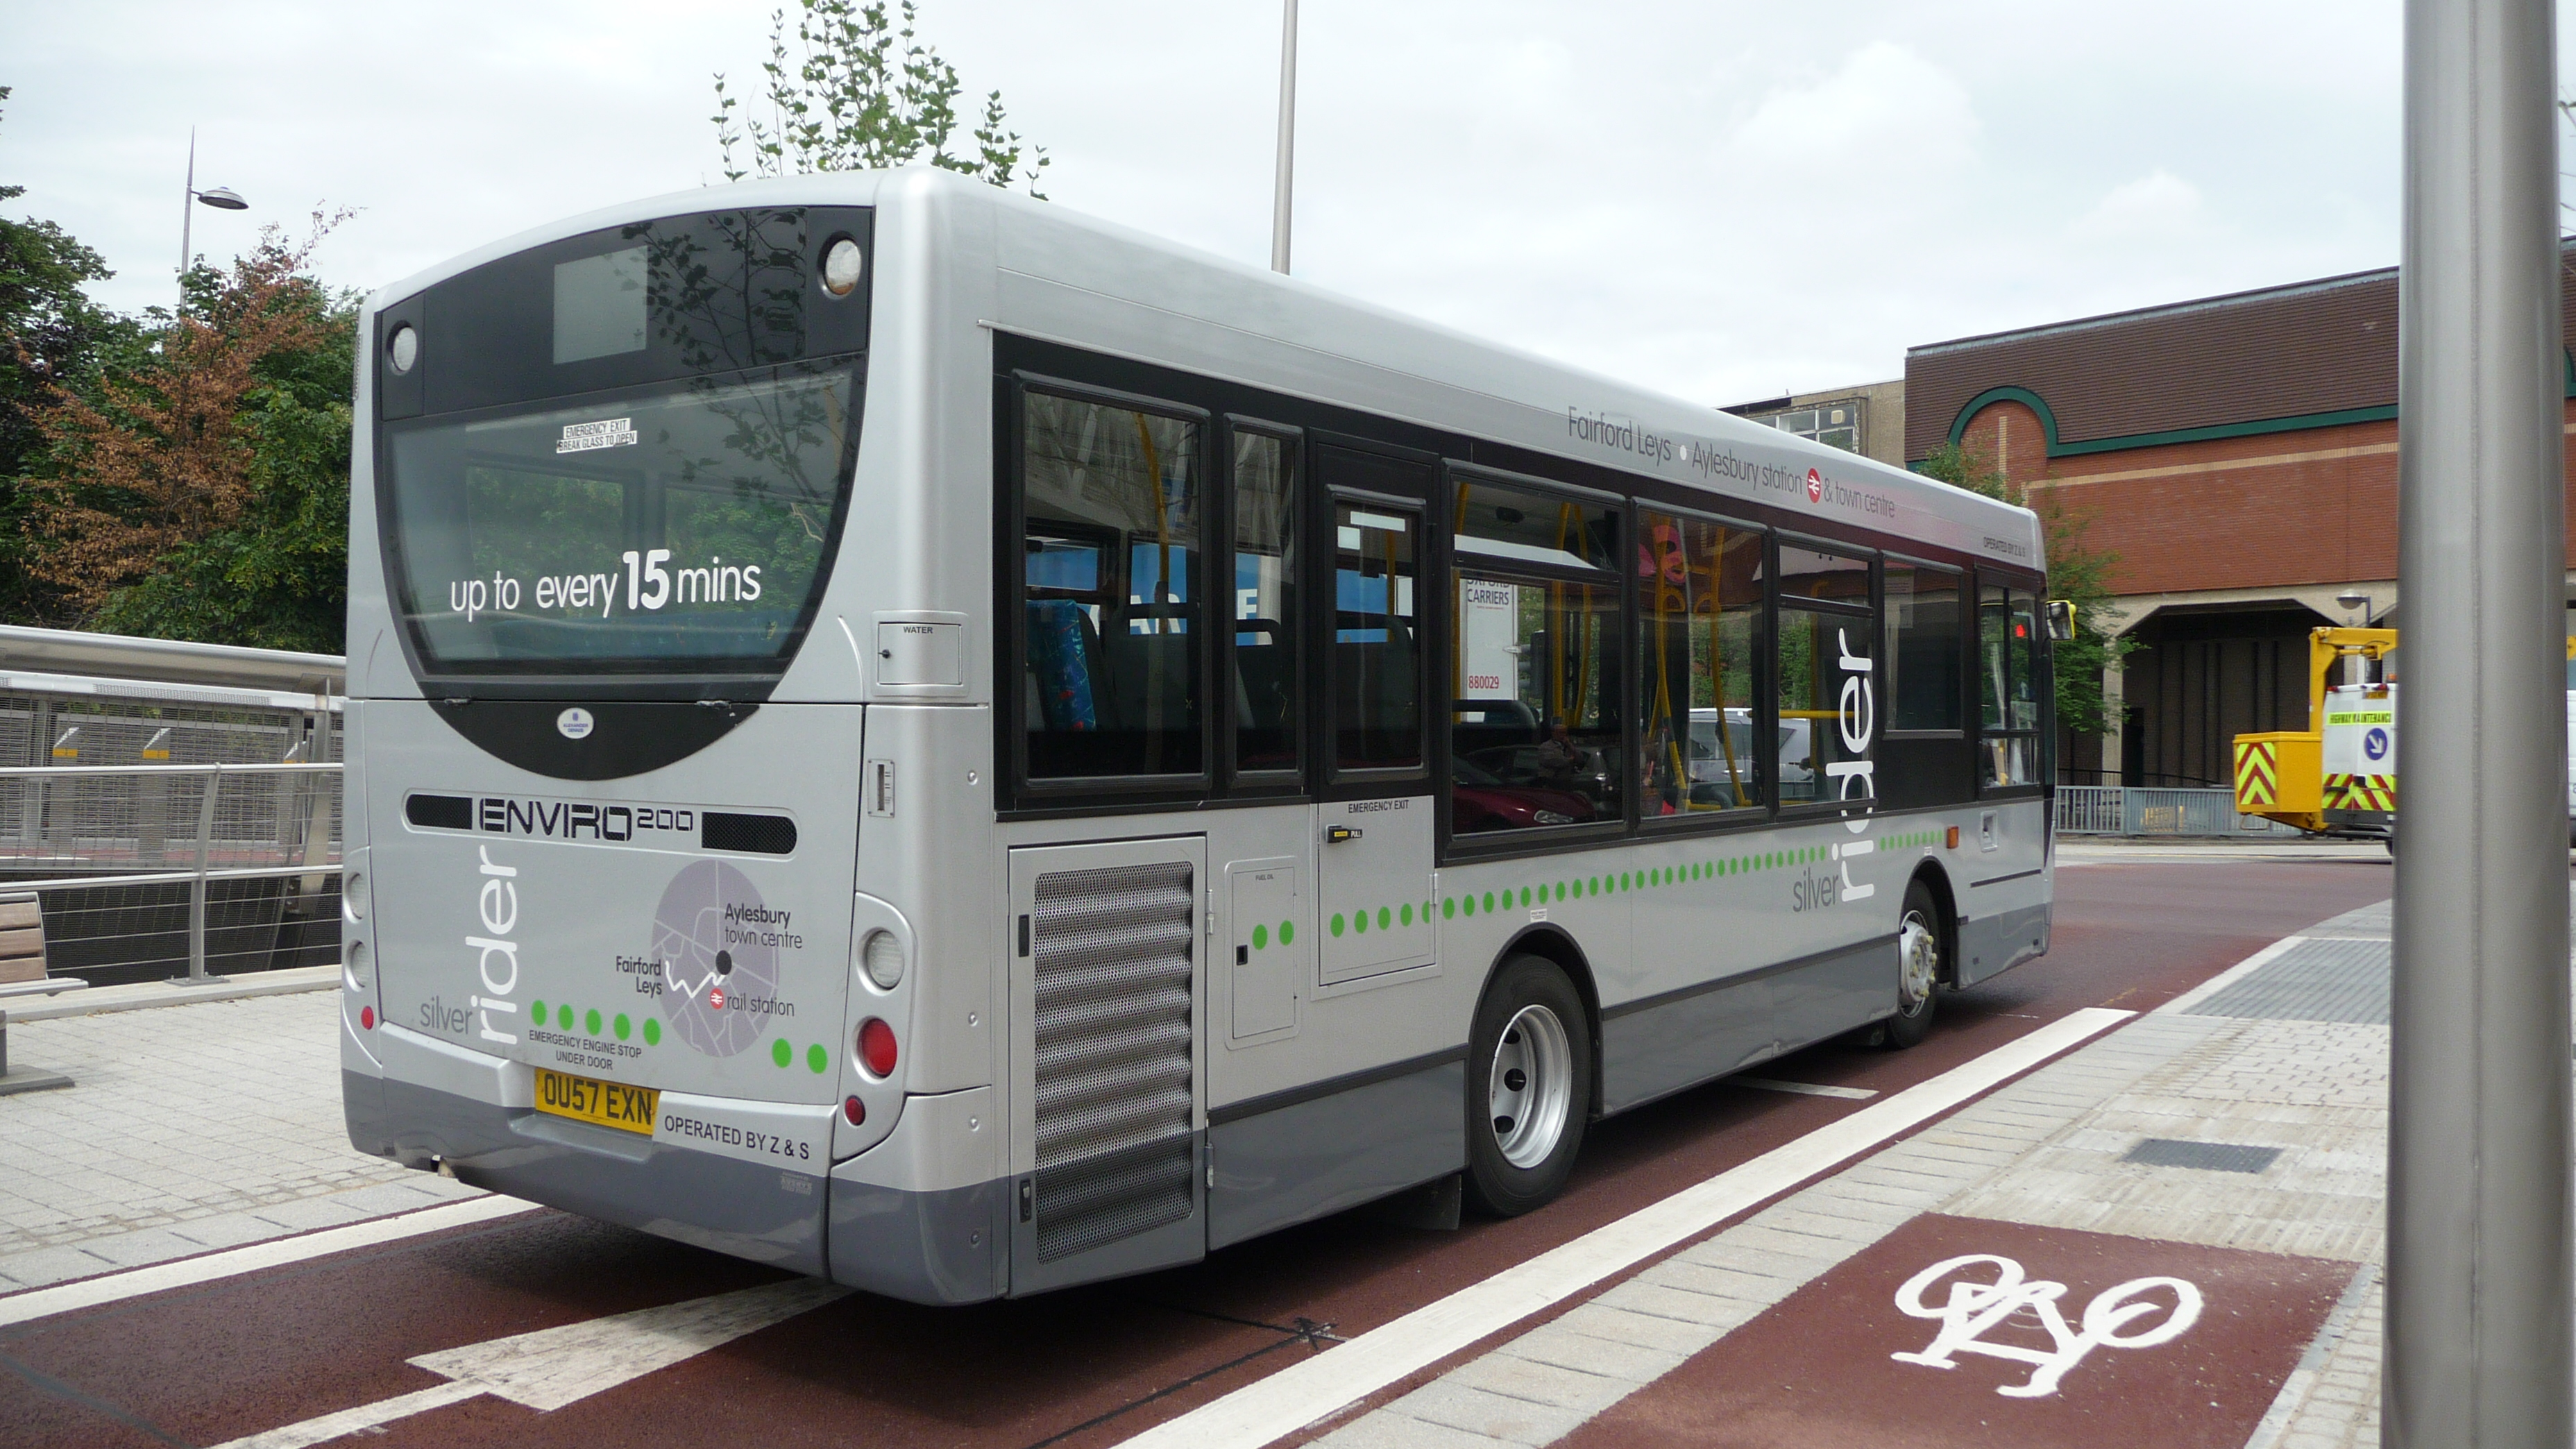 File:Z&S International OU57 EXN rear.JPG. By: Arriva436